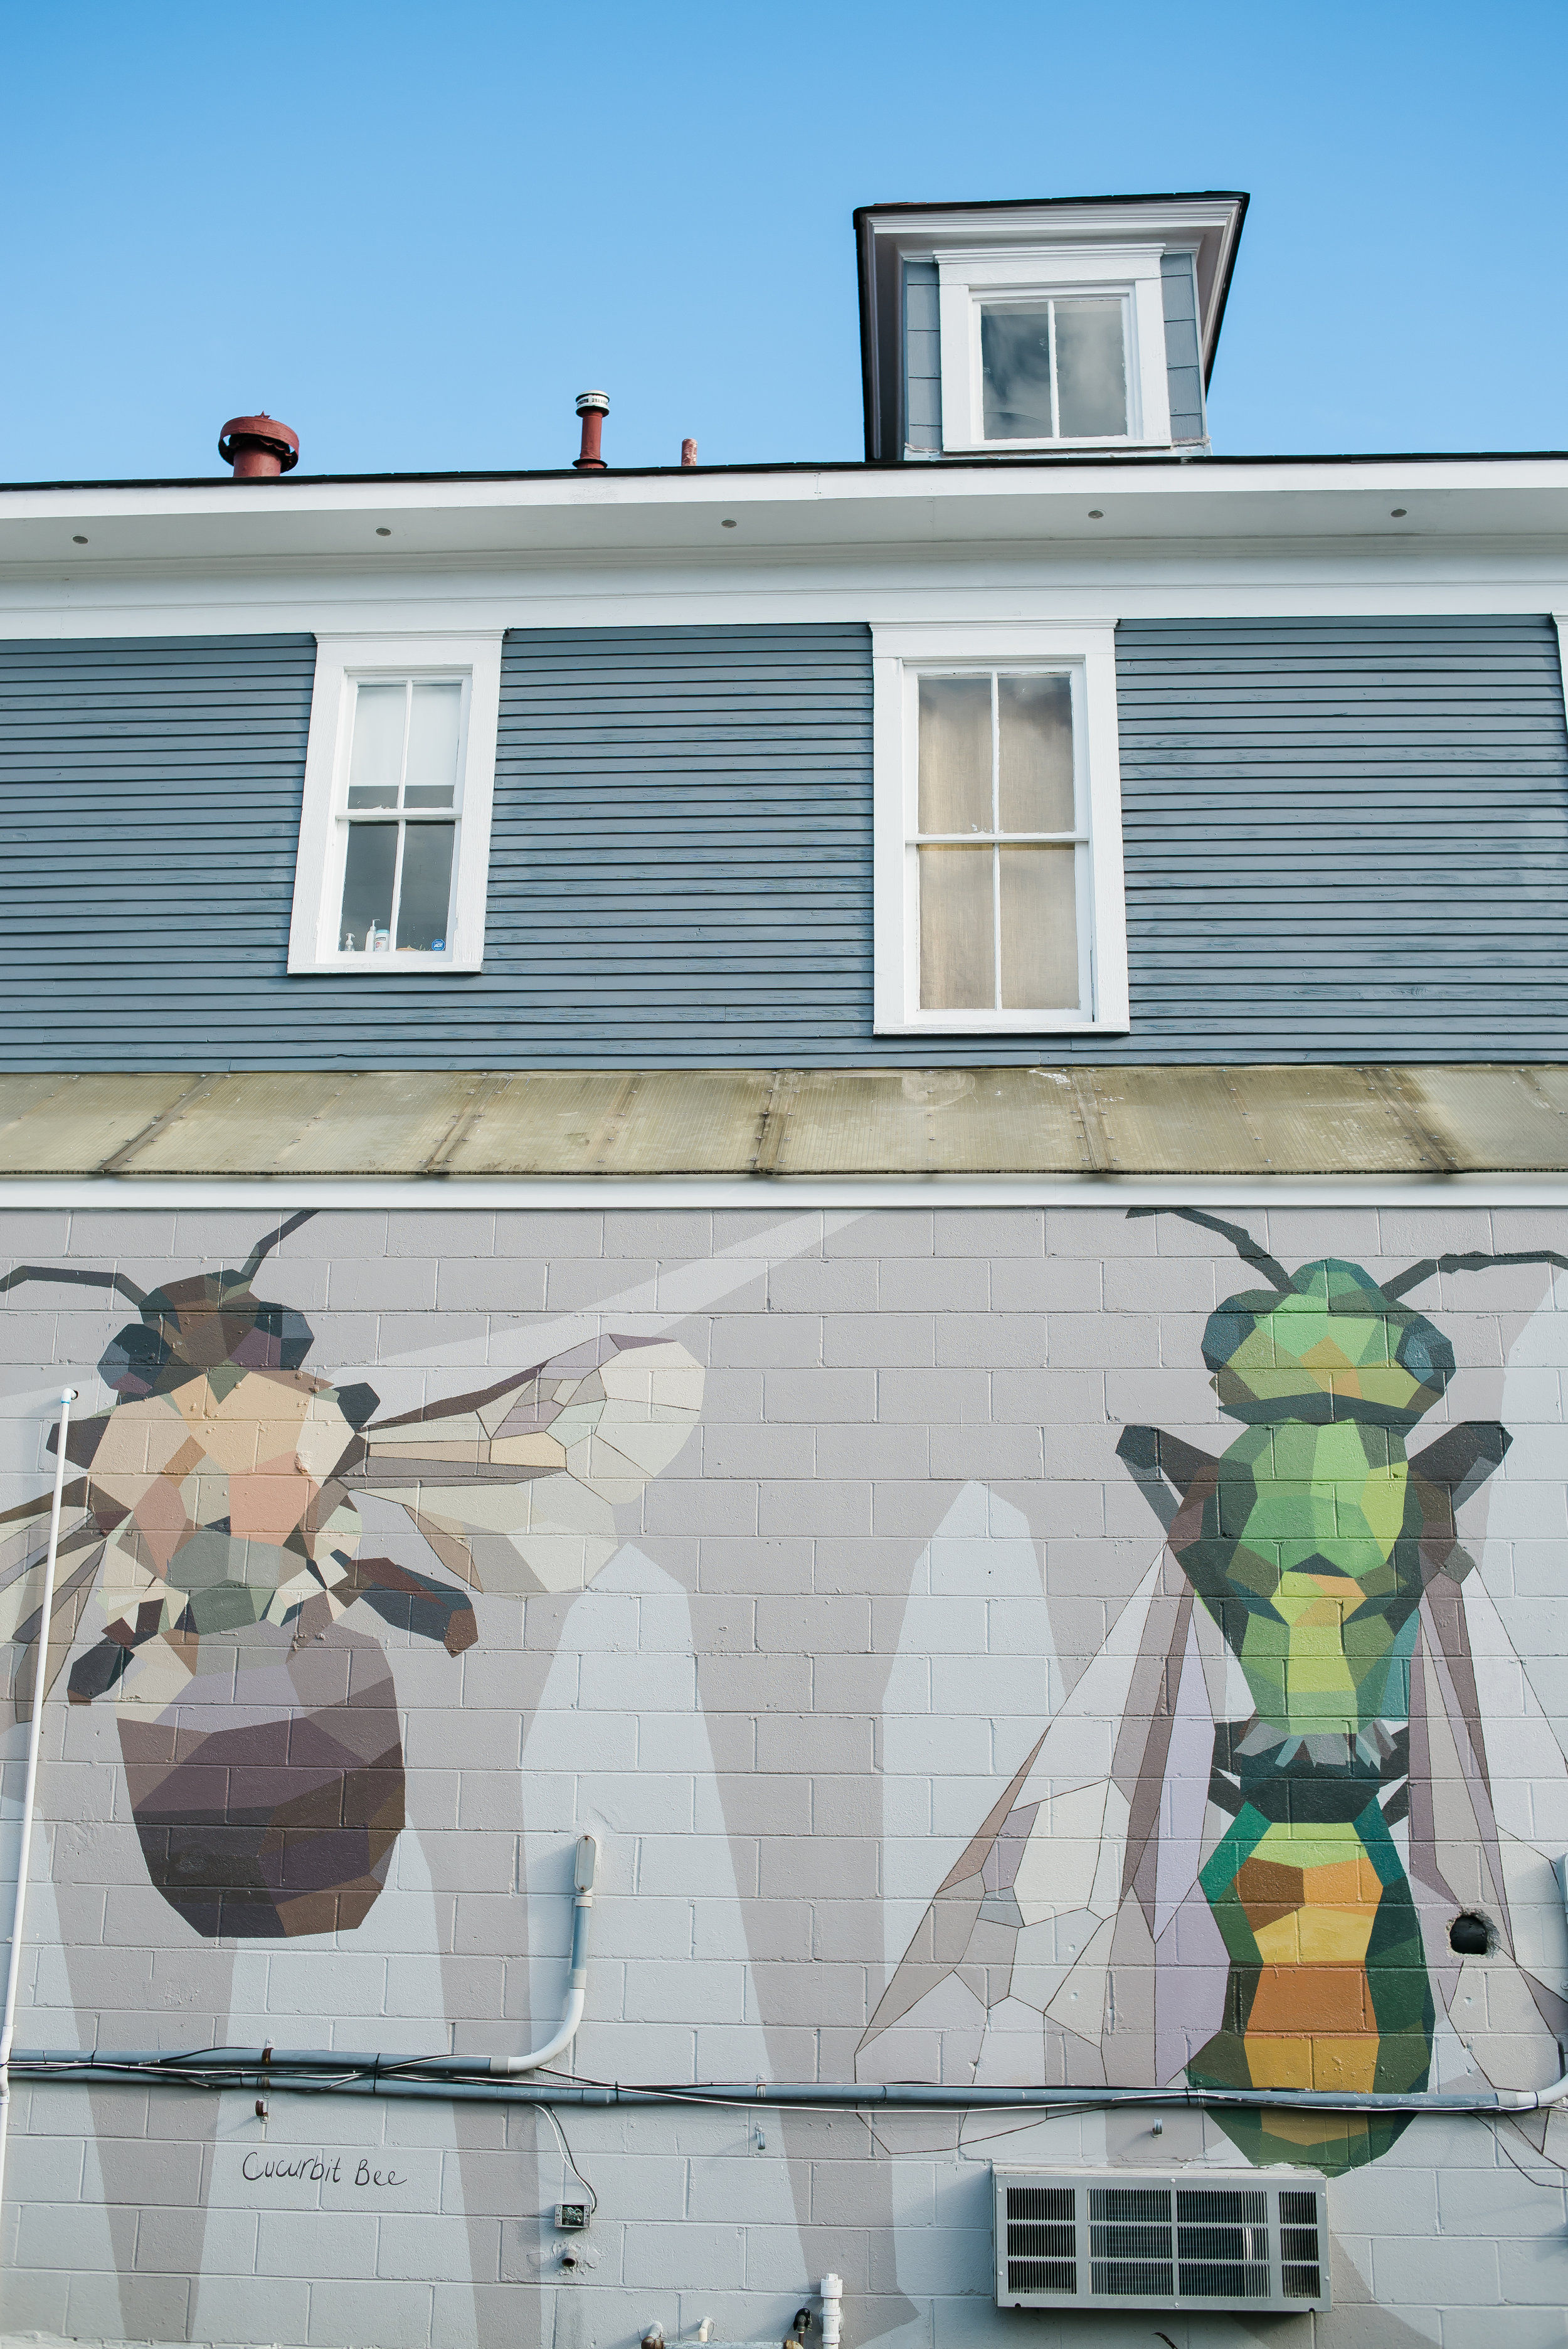 Wall art in the Starland District